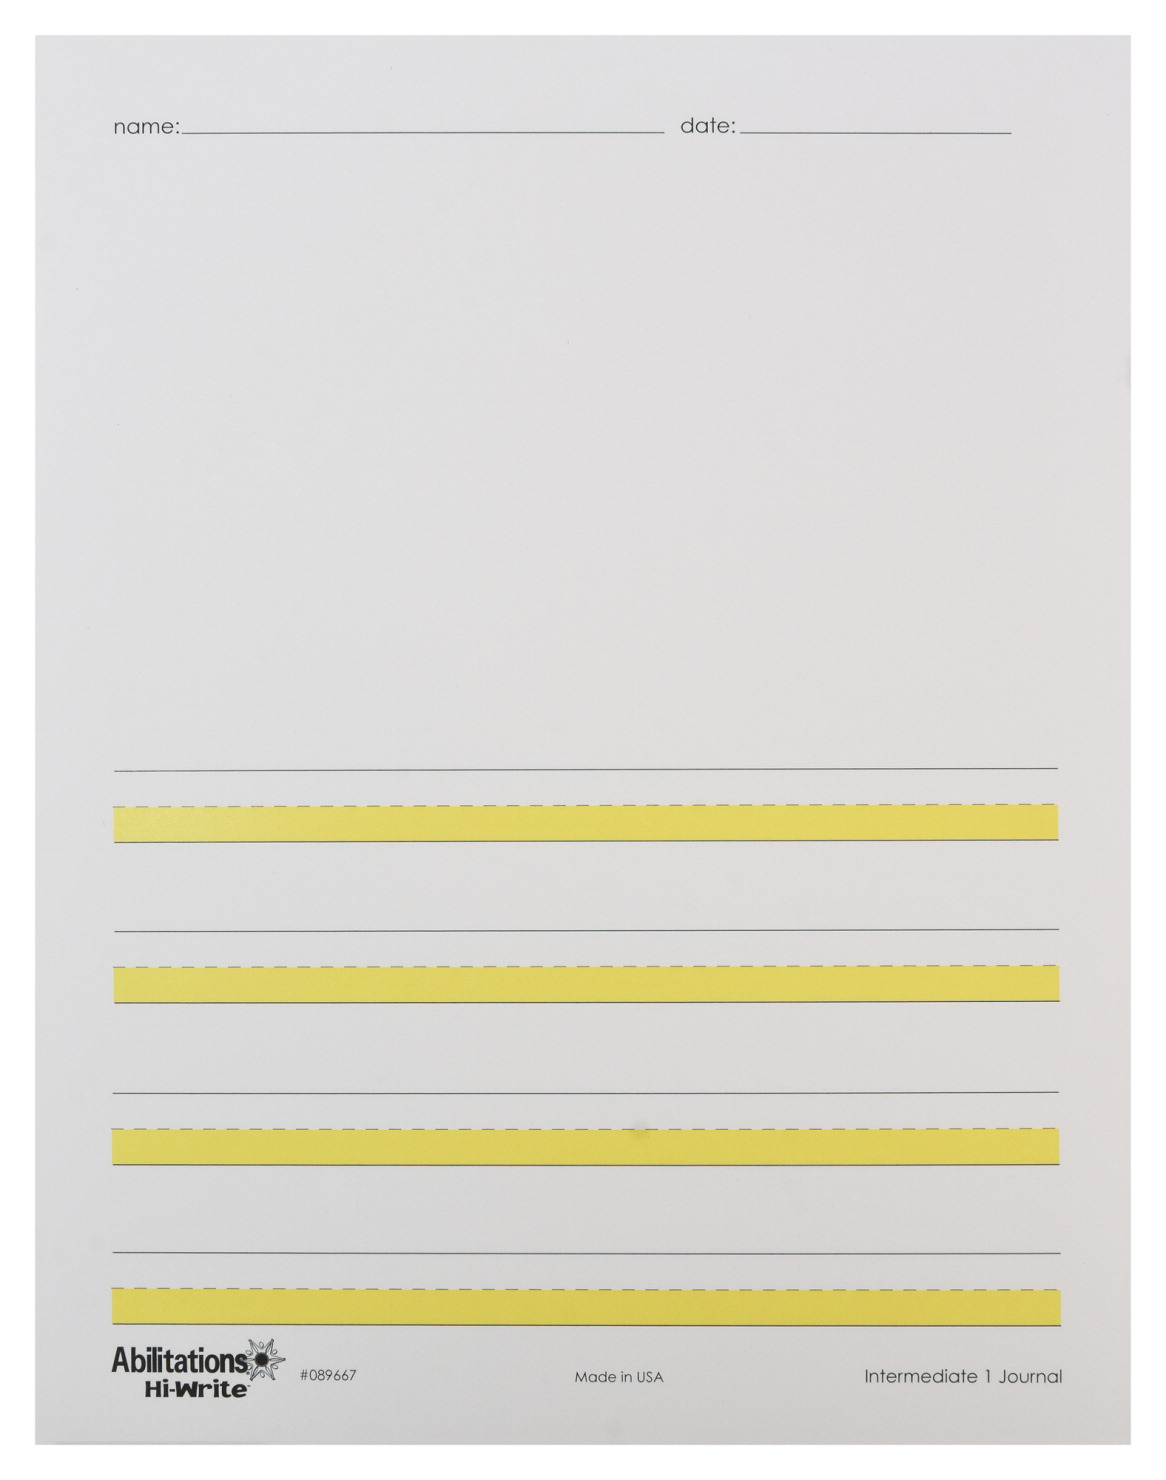 Abilitations Hi-Write Intermediate Journal Paper, Level 1, 8-1/2 x 11 Inches, 100 Sheets